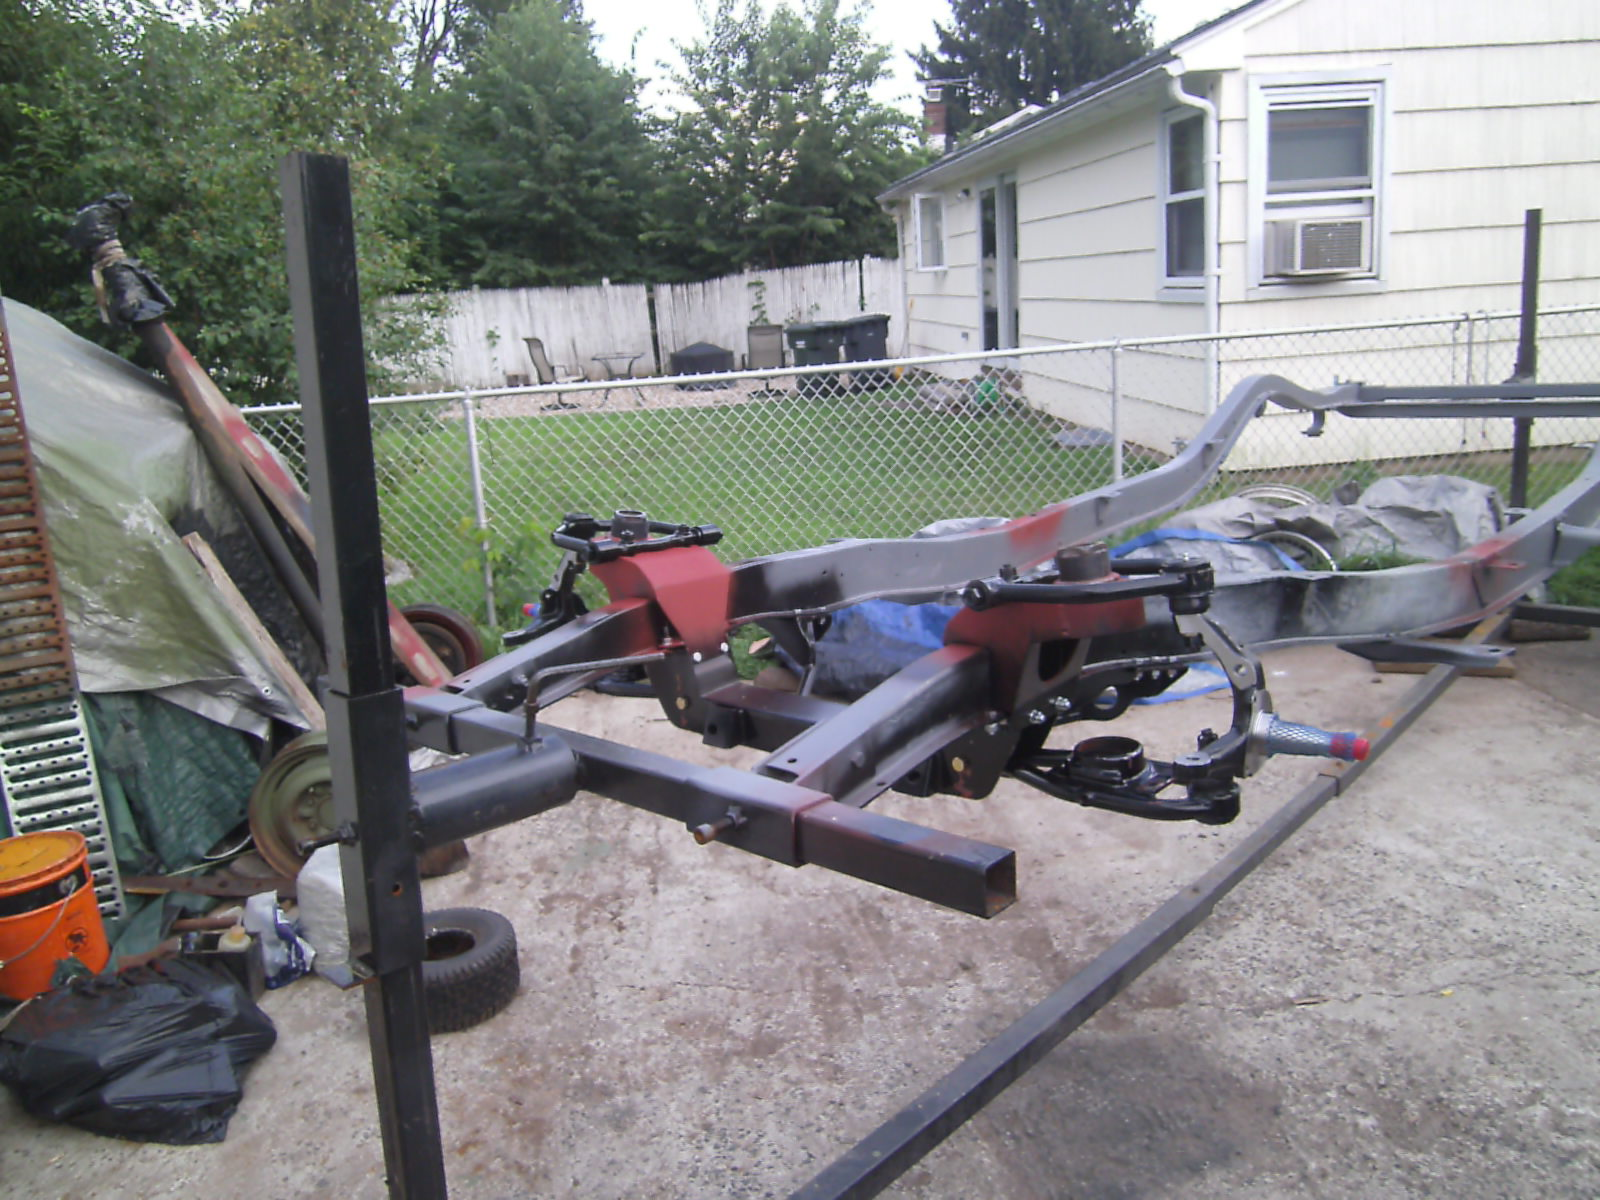 Click image for larger version  Name:41chevy part2 003.JPG Views:128 Size:380.4 KB ID:75858